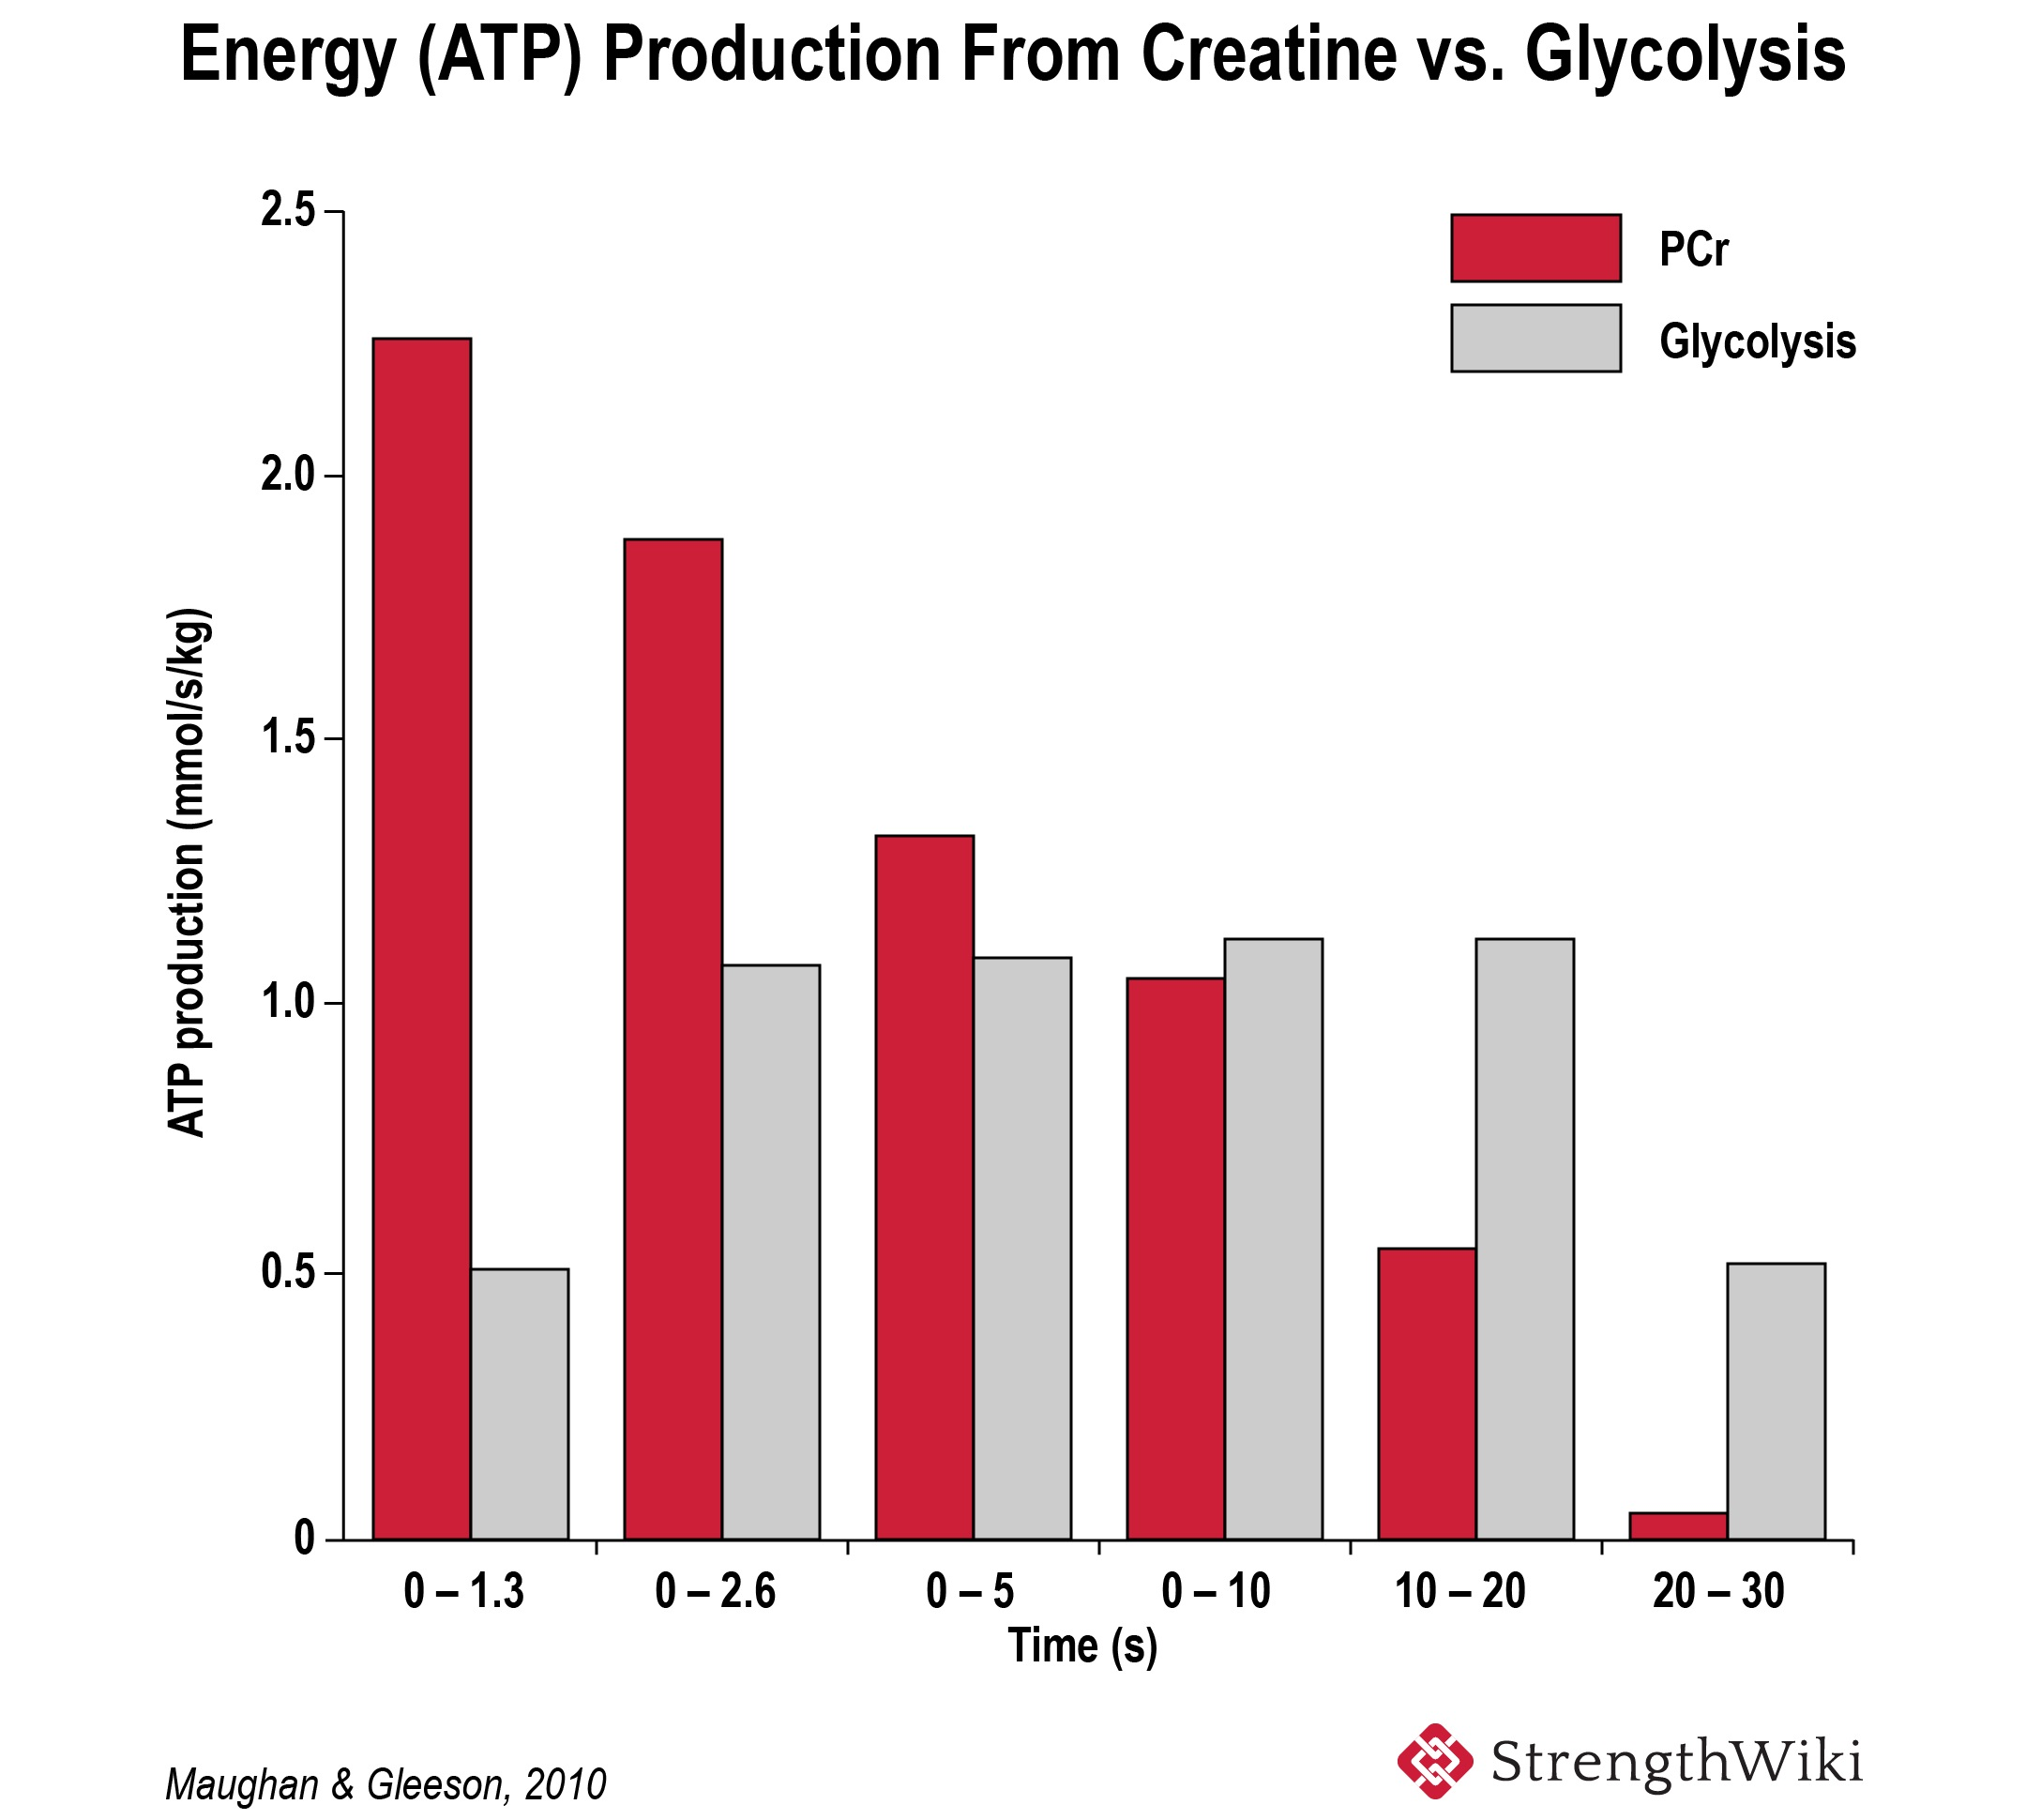 Energy ATP production from creatine vs glycolysis